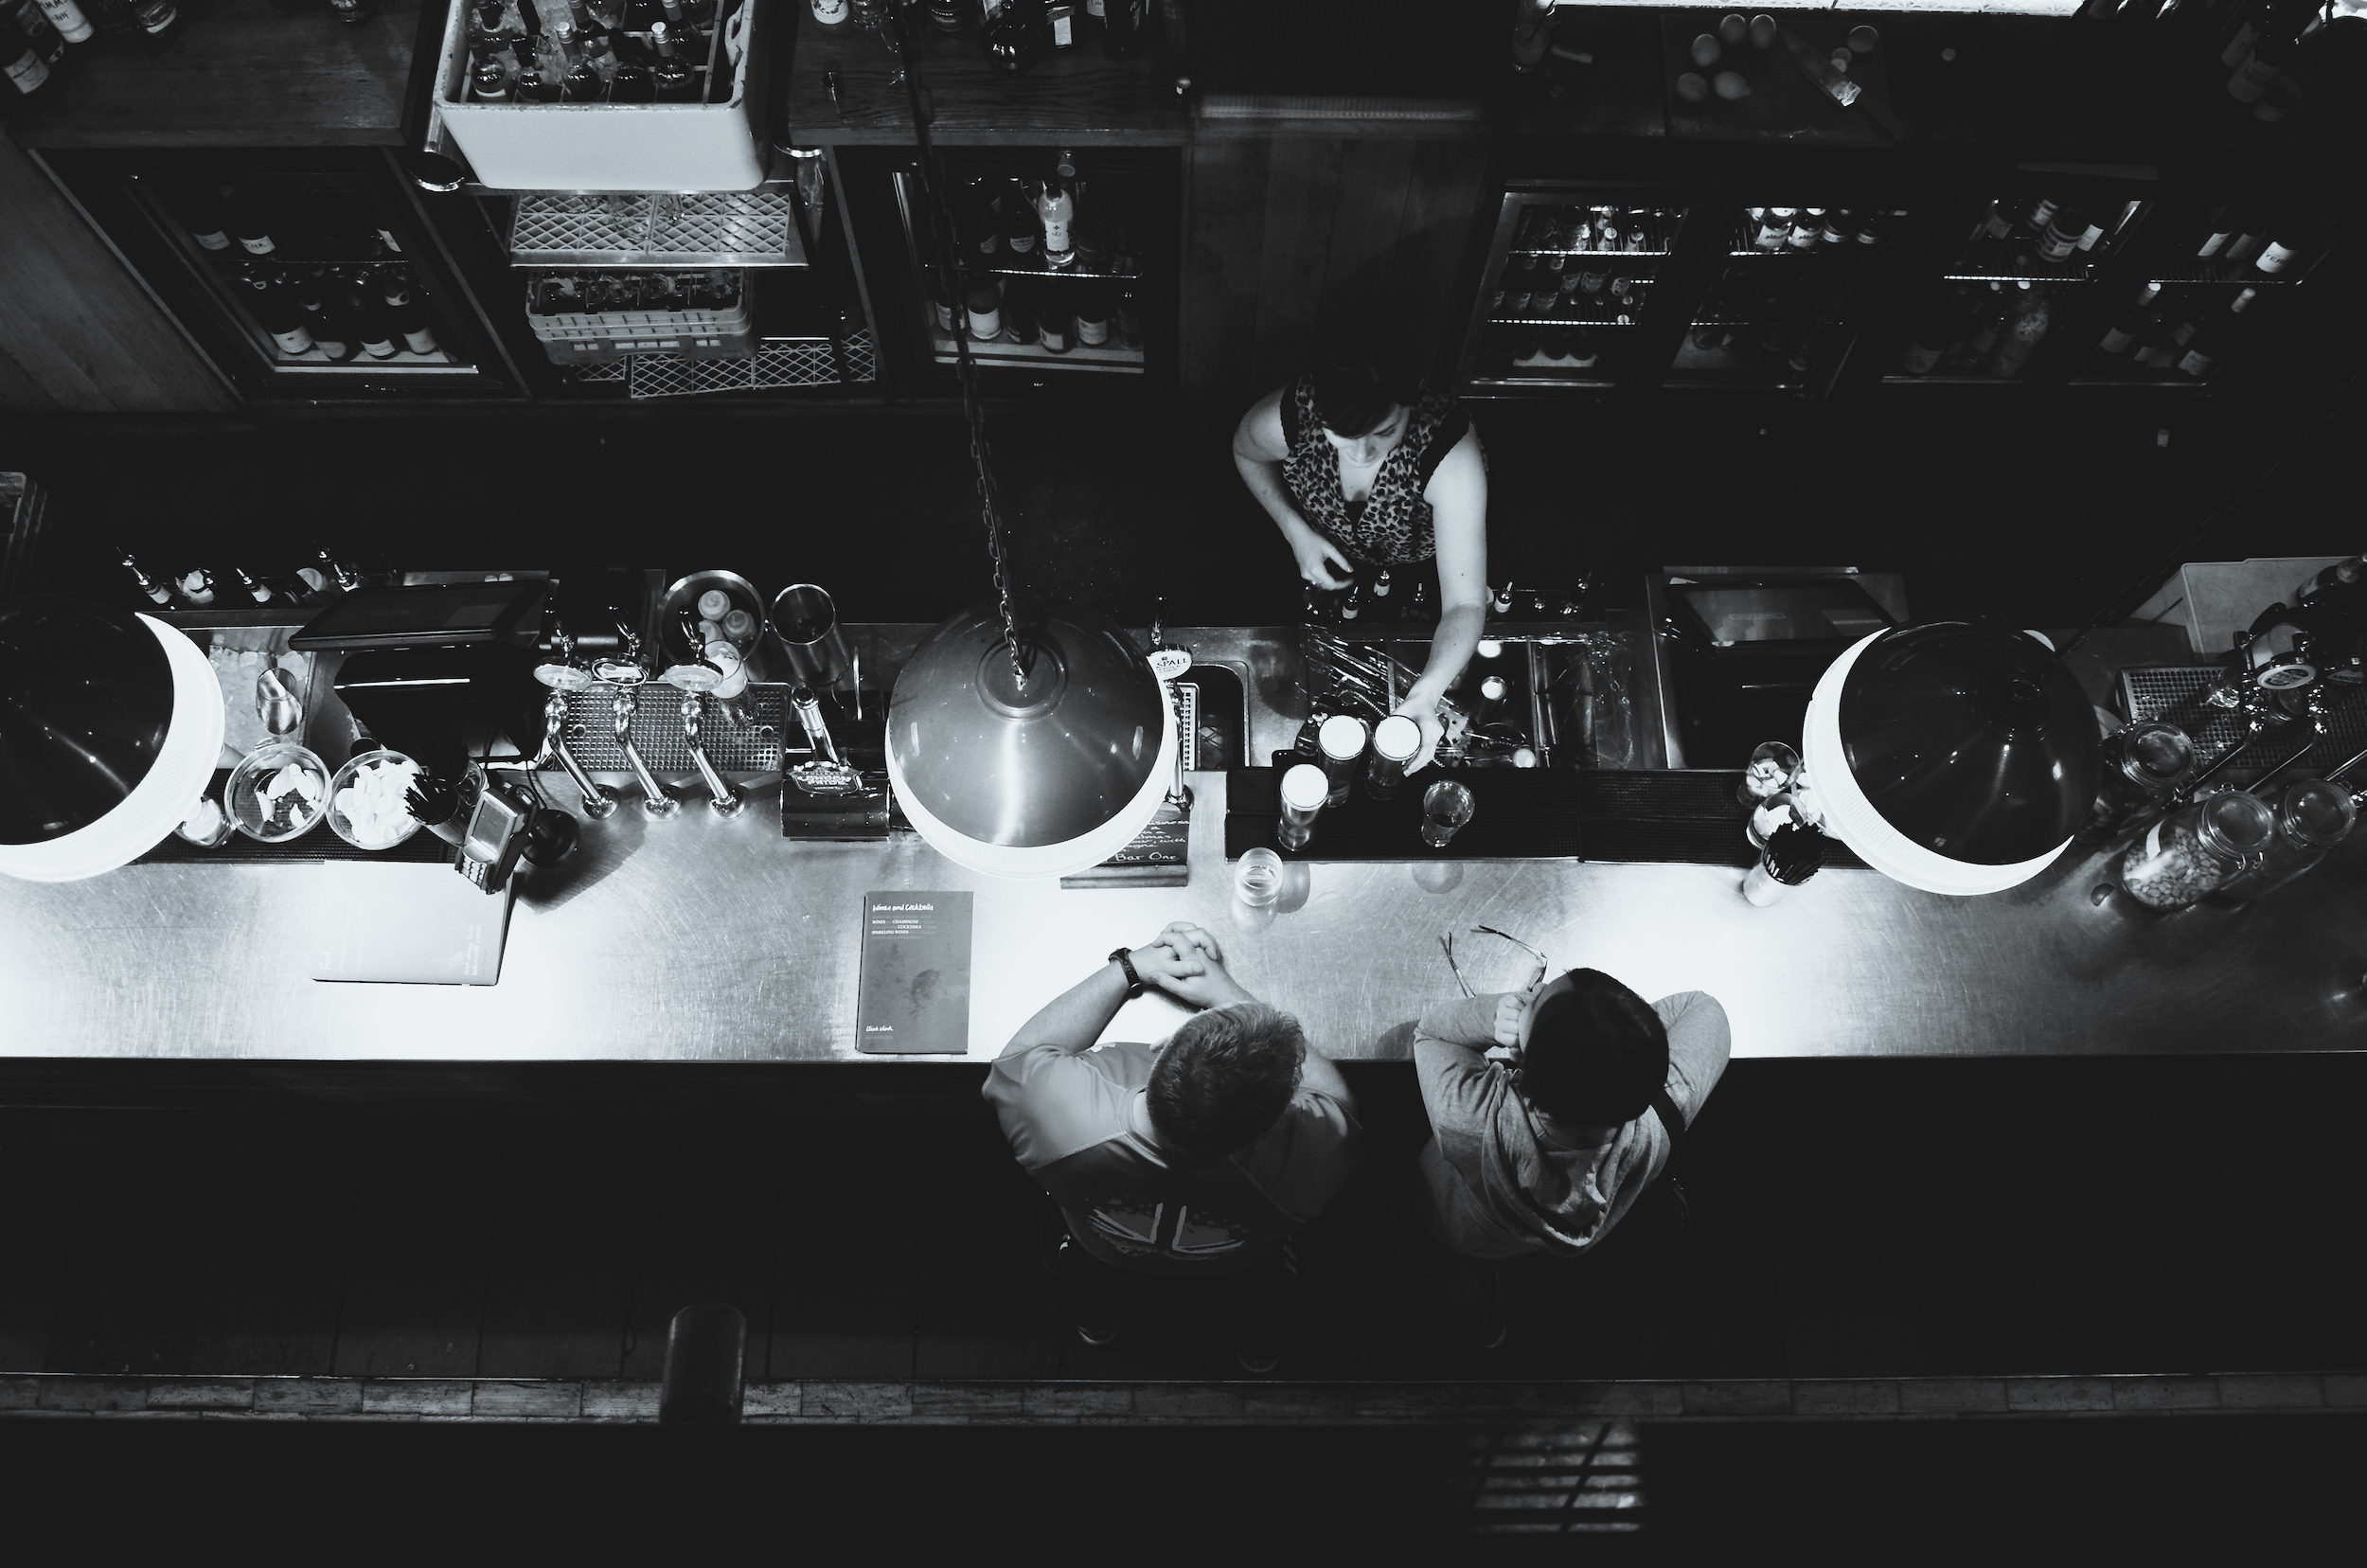 Overhead view of two people drinking in a bar